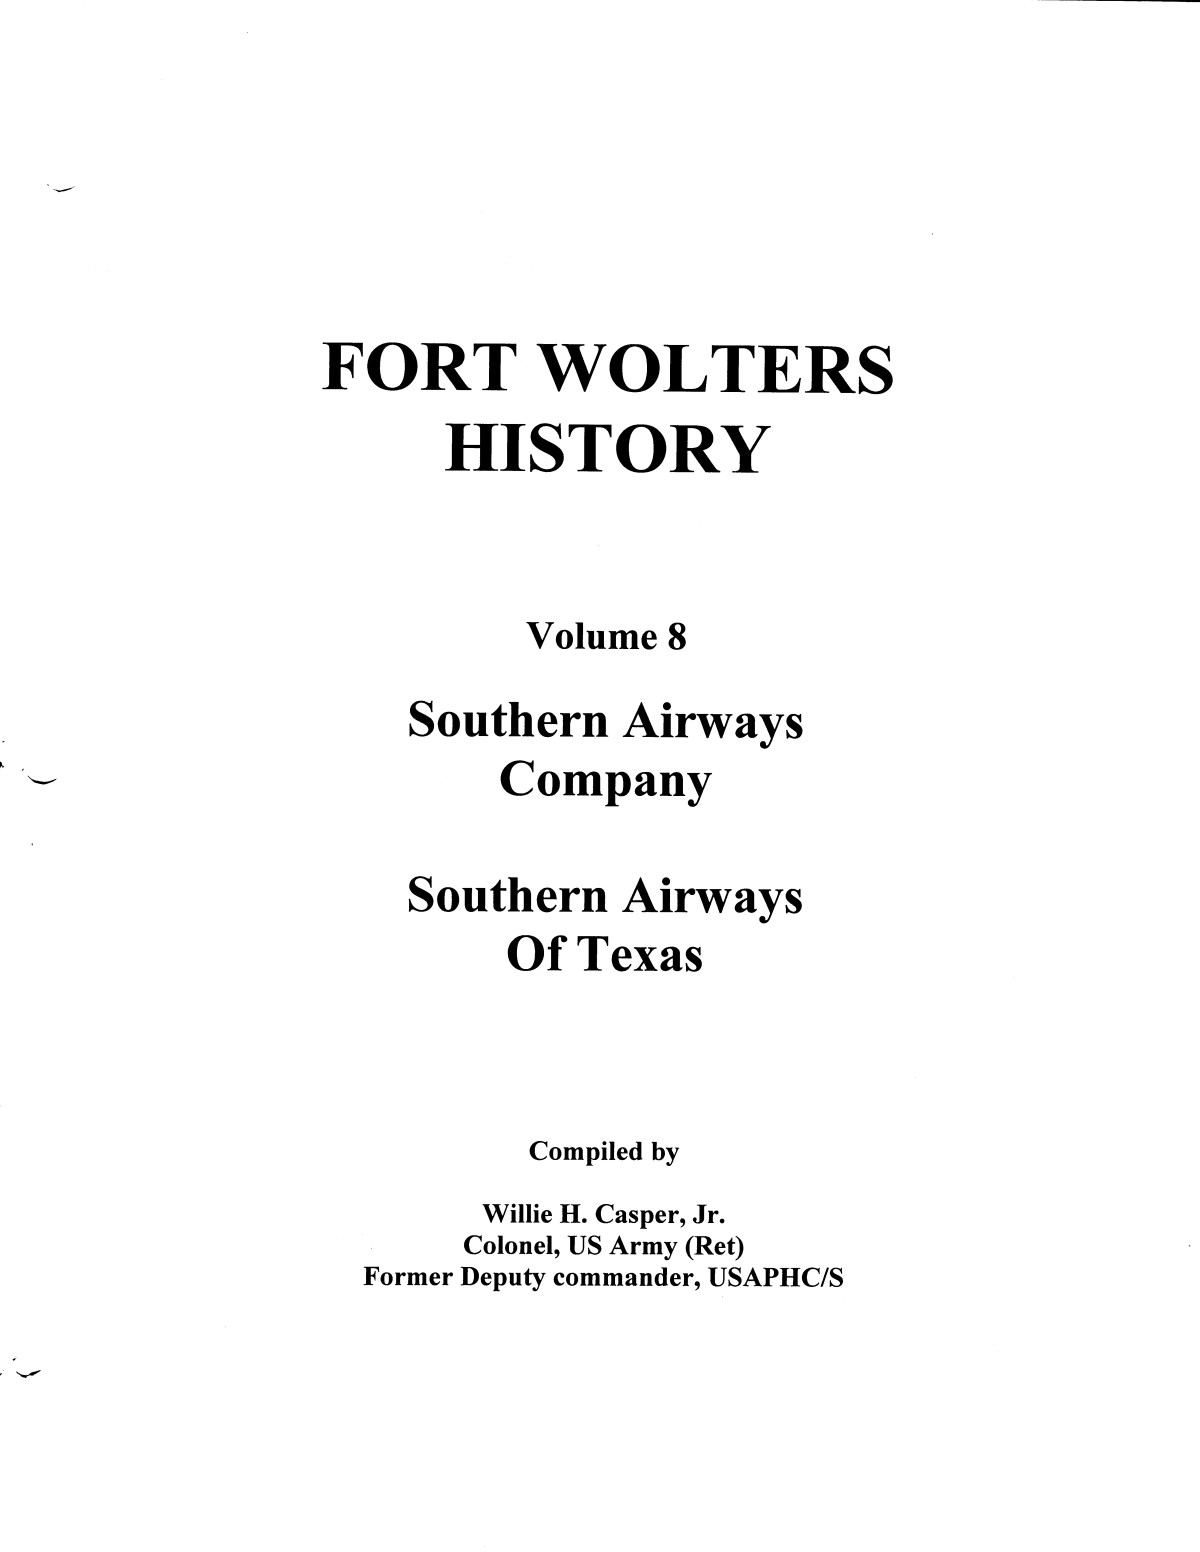 Pictorial History of Fort Wolters, Volume 8: Southern Airways Company, Southern Airways of Texas                                                                                                      [Sequence #]: 1 of 329